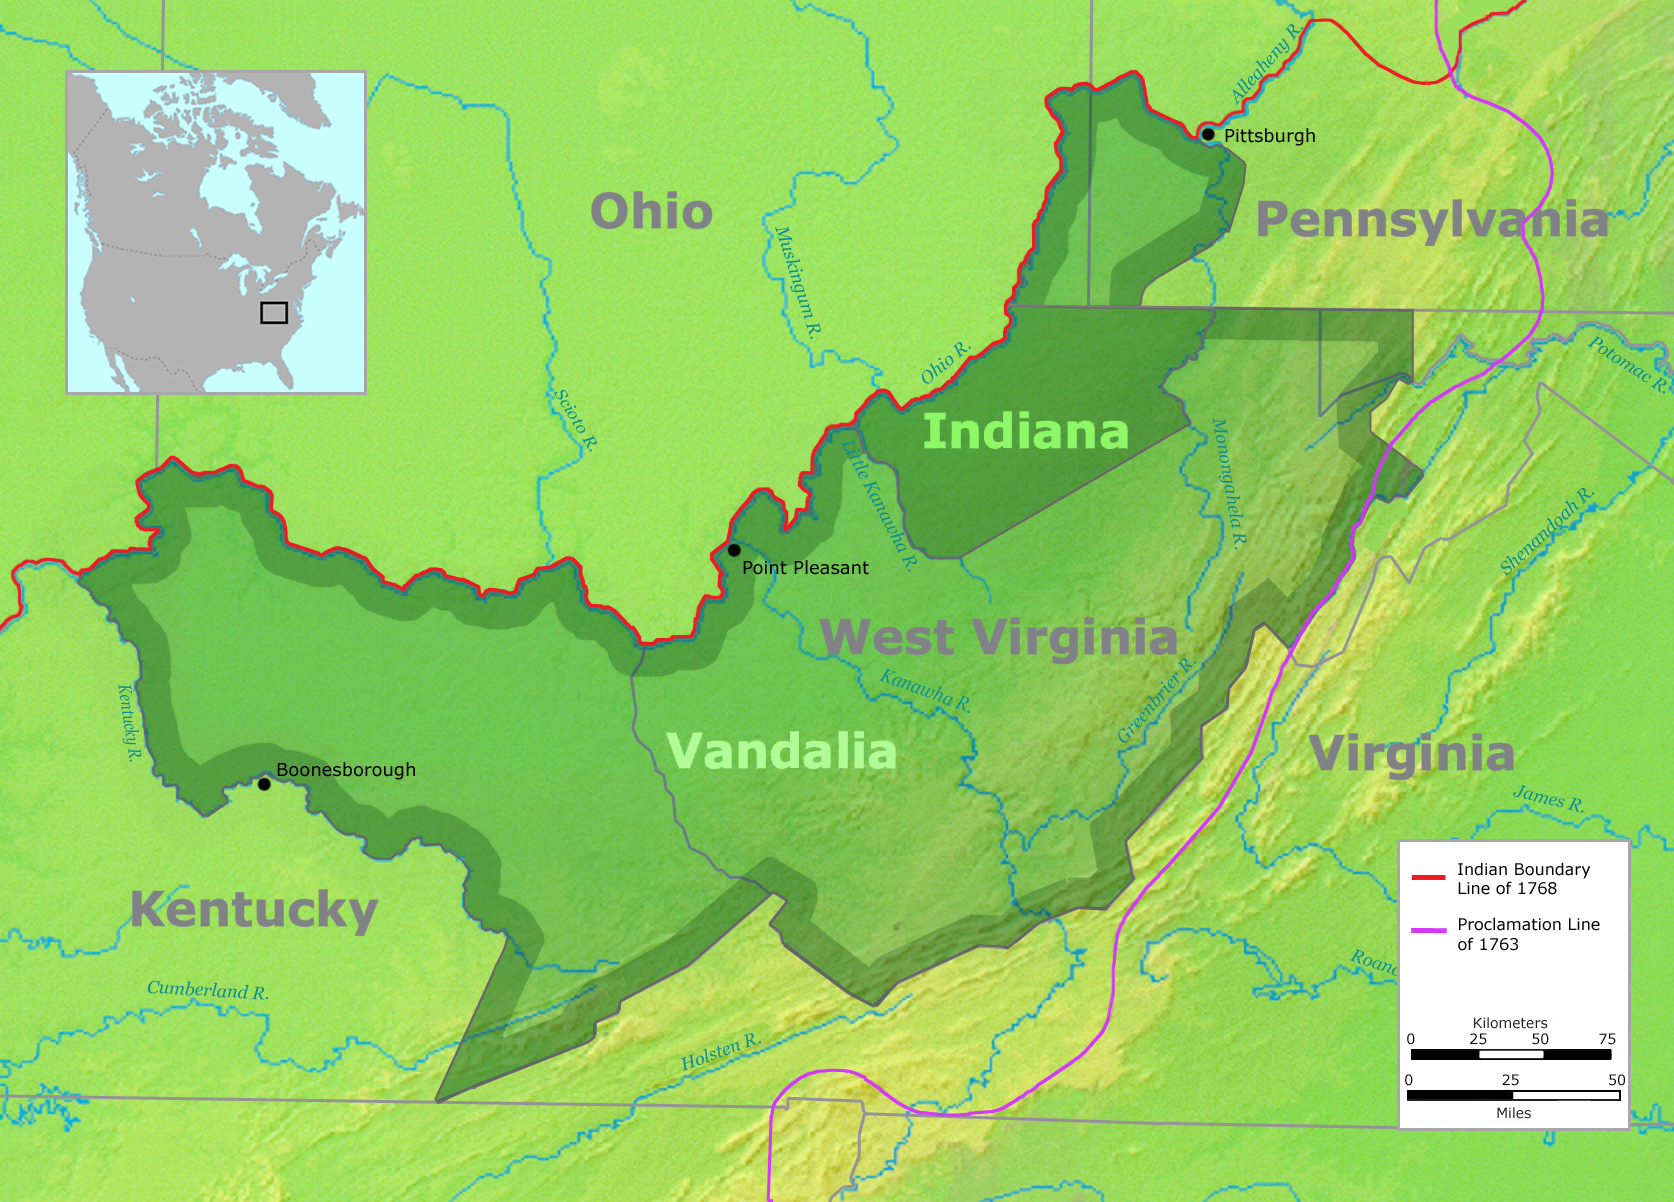 Vandalia (colony) - Wikipedia on usa map showing dc, usa map showing boston, usa map showing mississippi river, usa map showing hawaii, usa map showing all states, usa map showing yellowstone national park,